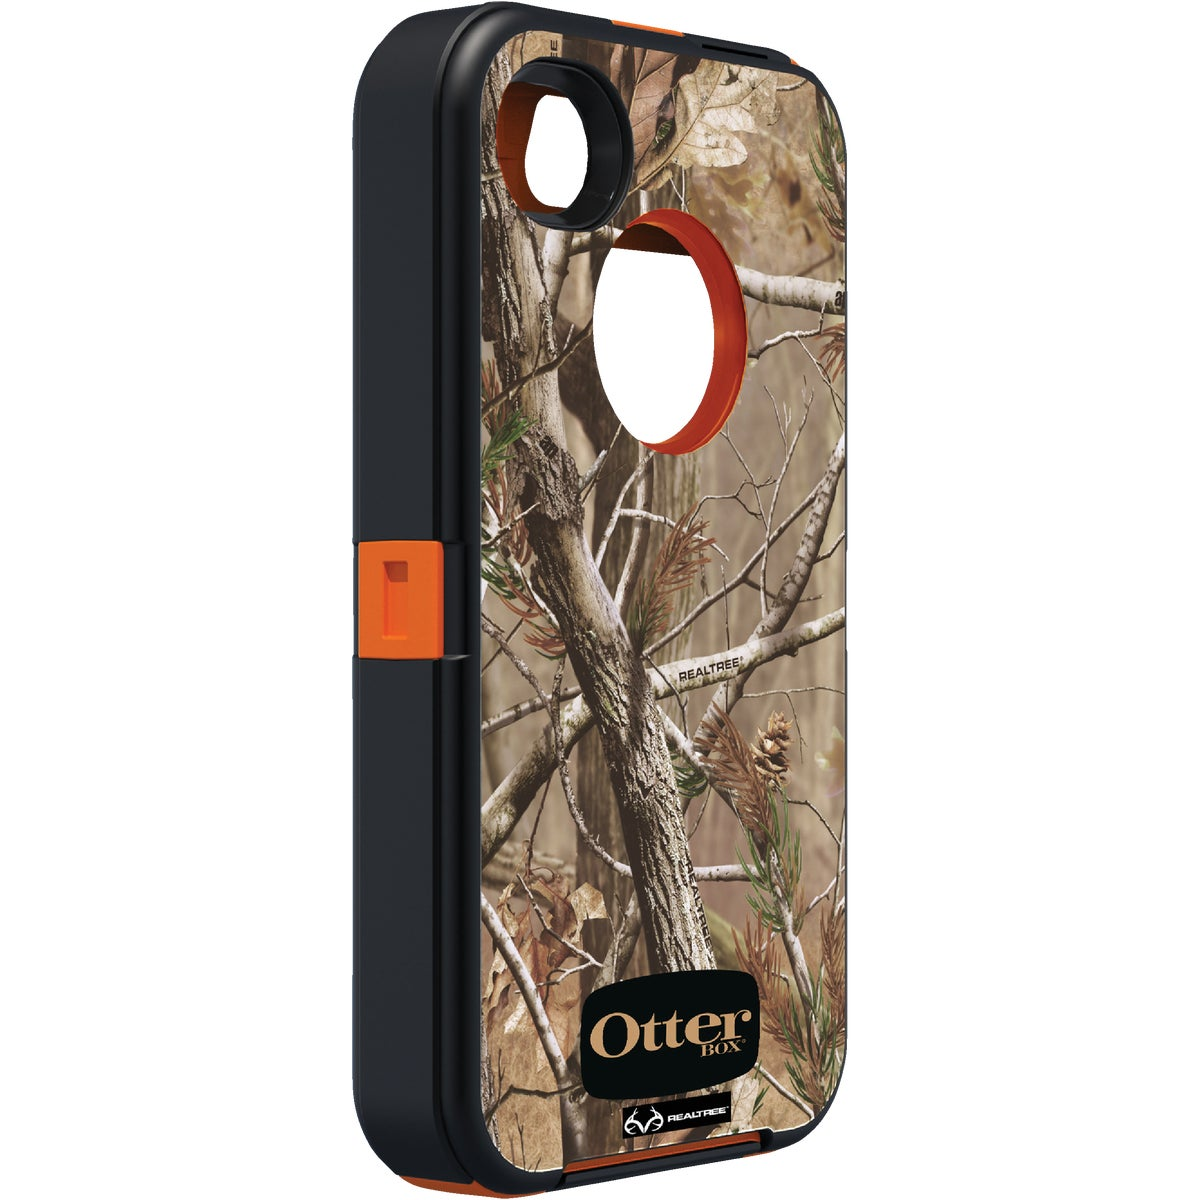 IPHONE4S BZD DEFEND CASE - 77-18740P1 by Nite Ize   Rcp